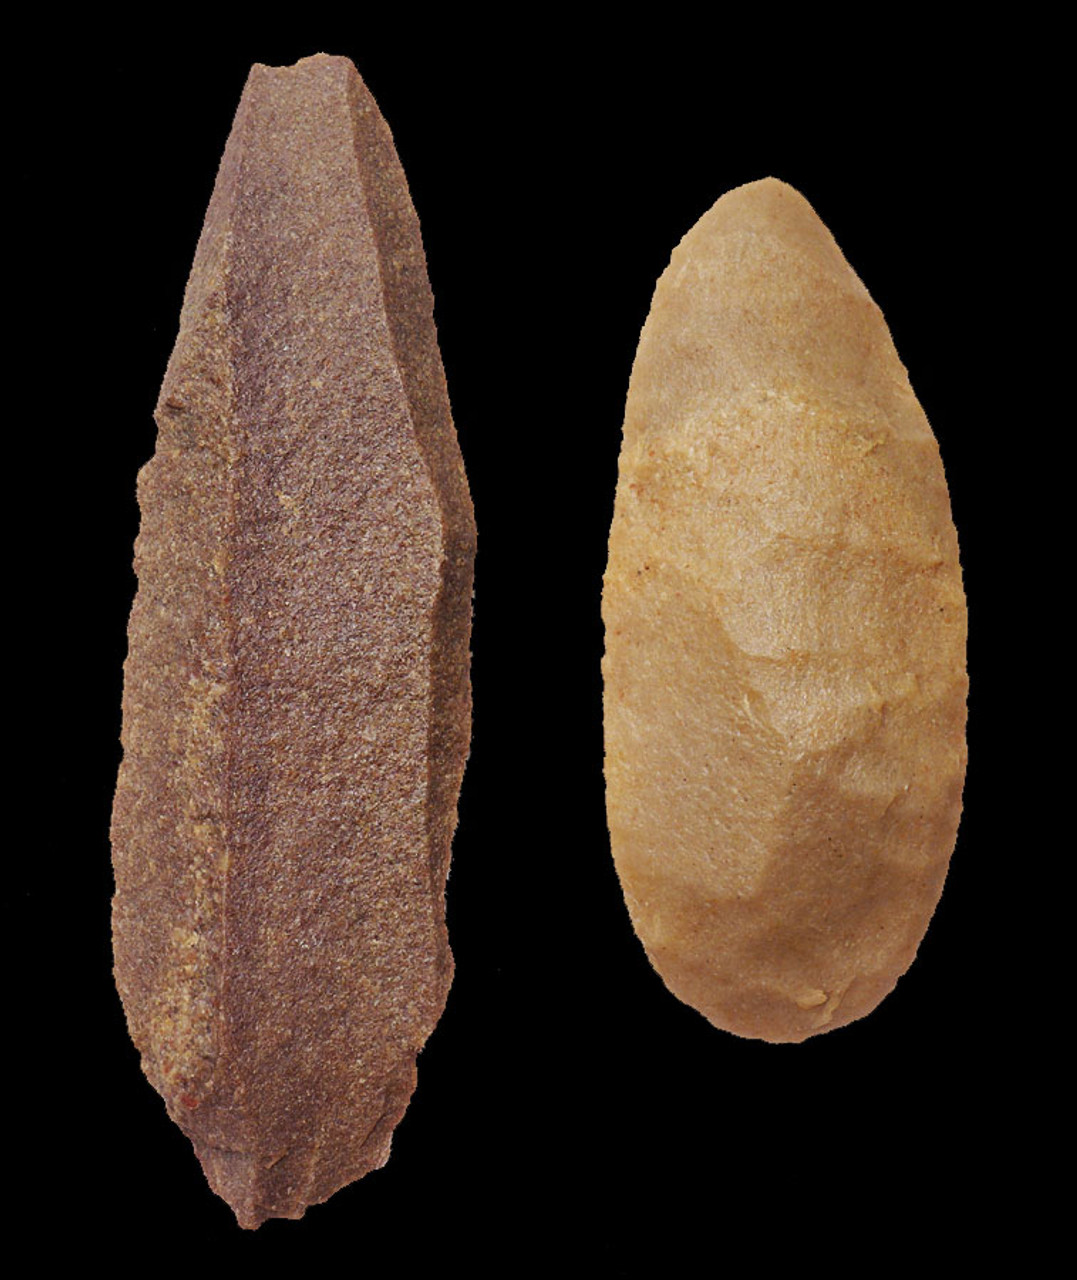 TWO TENERIAN AFRICAN NEOLITHIC FLAKED BLADES FROM THE PEOPLE OF THE GREEN SAHARA *CAP192